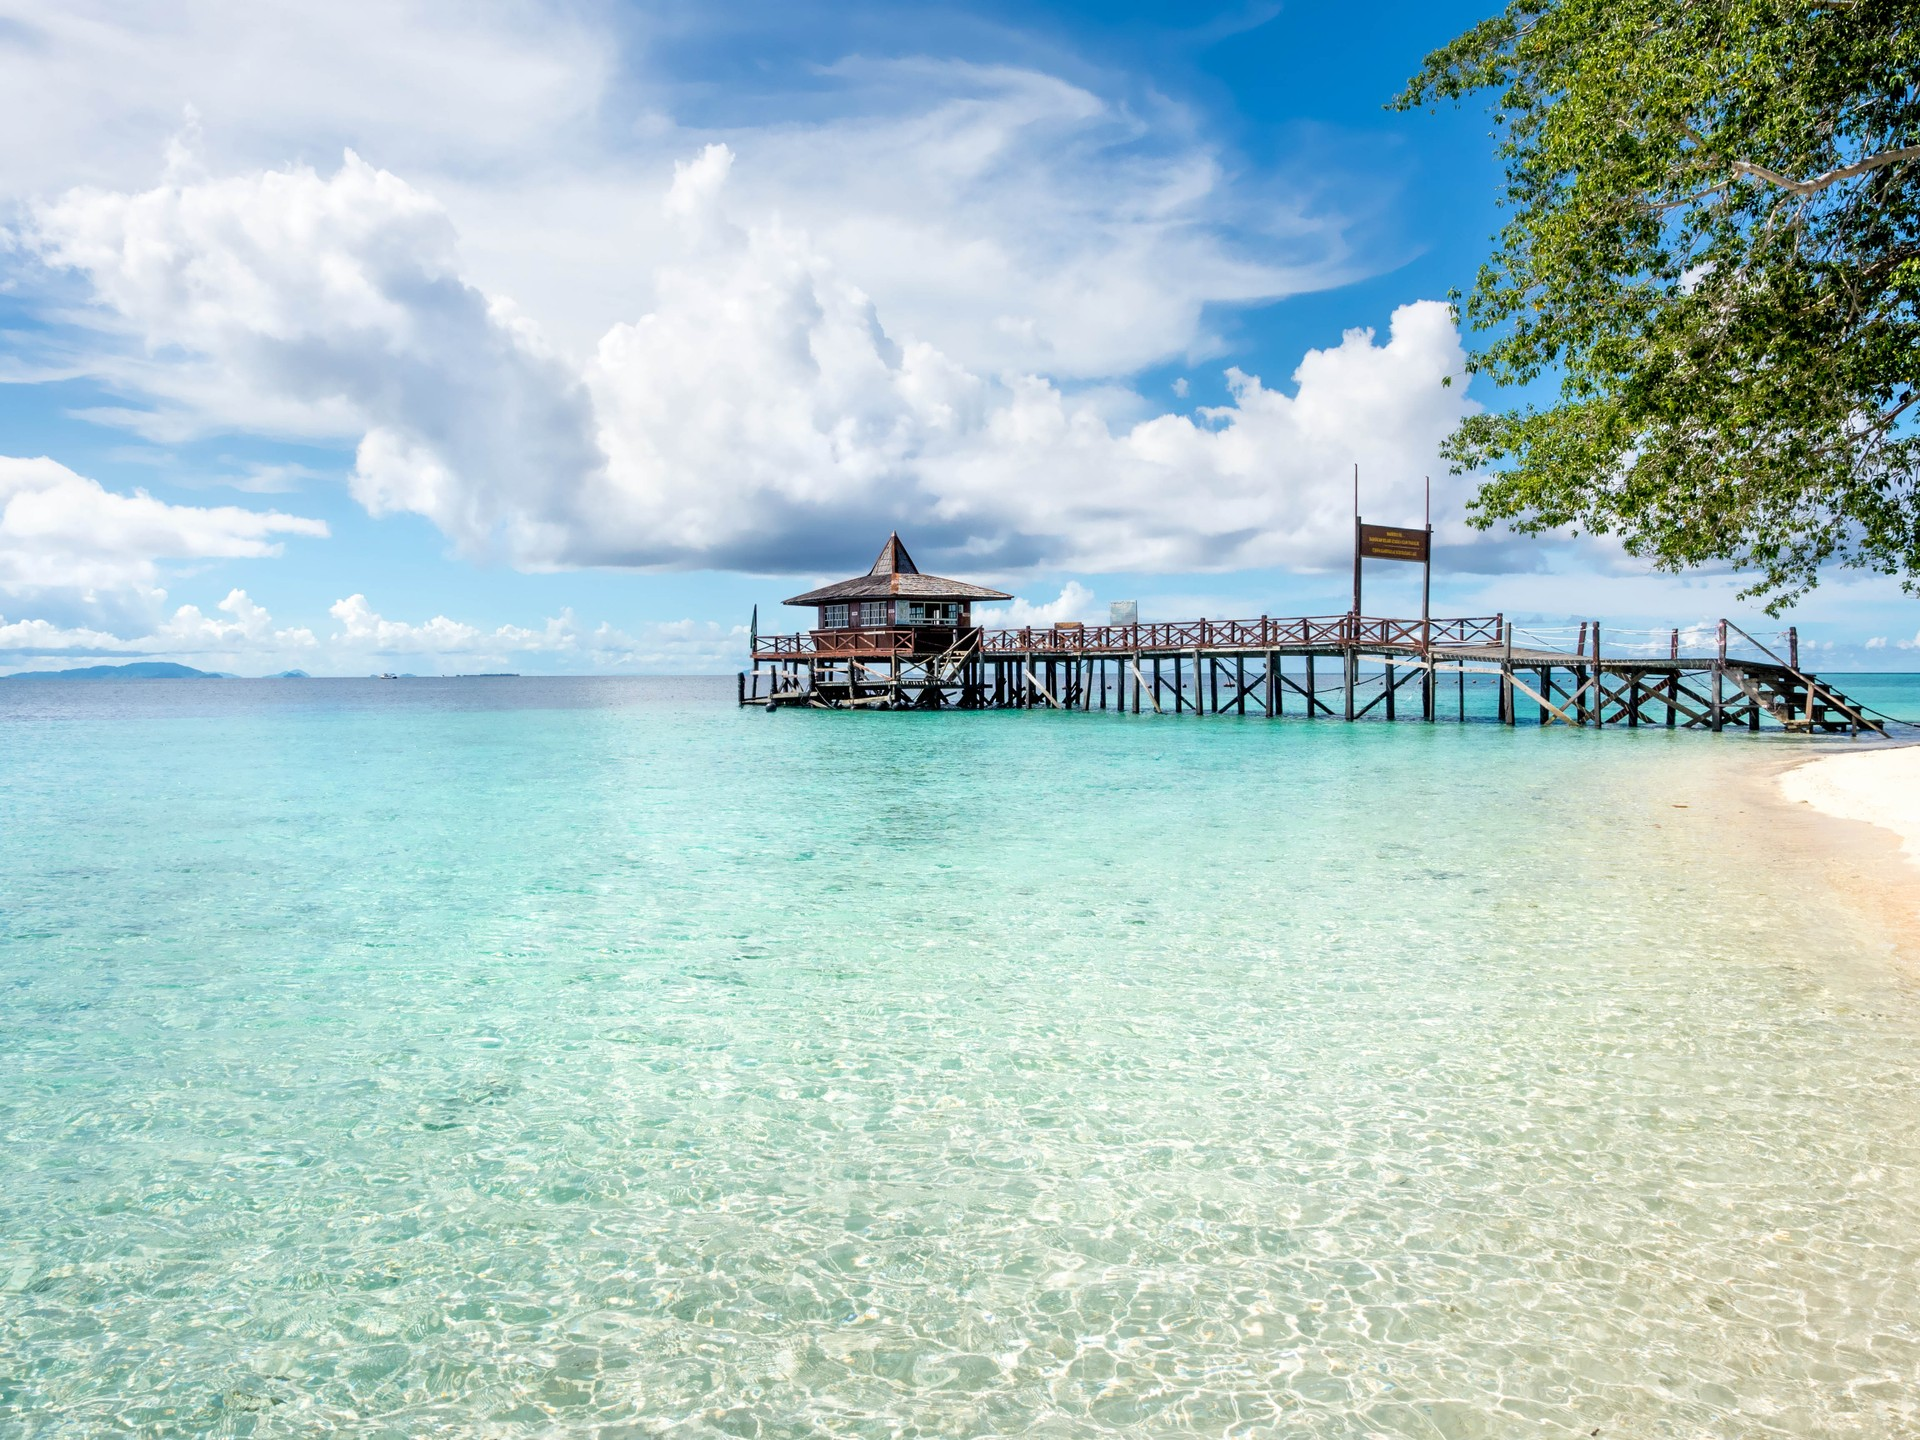 Borneo holidays: Beach on Sipadan island